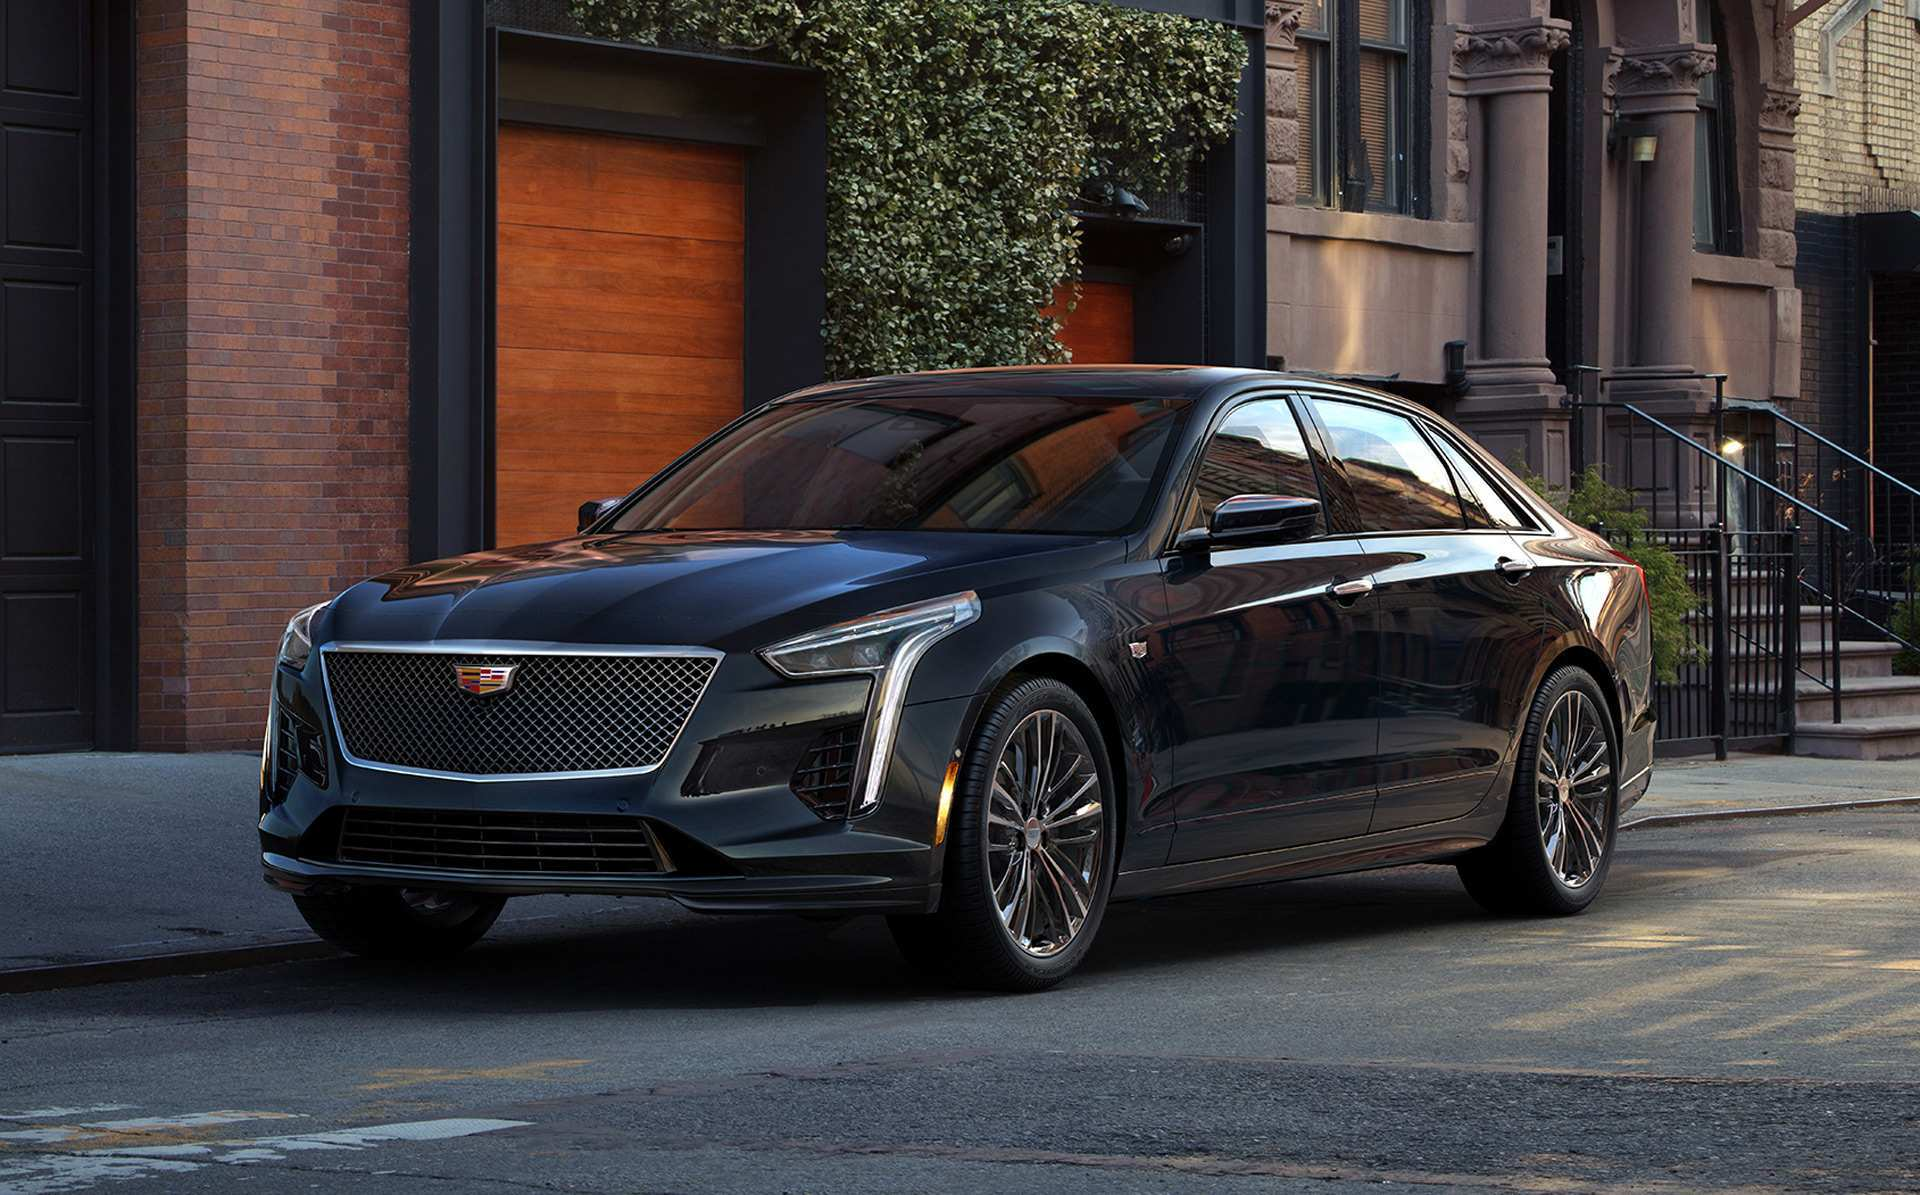 60 New 2020 Cadillac Ct6 V Images